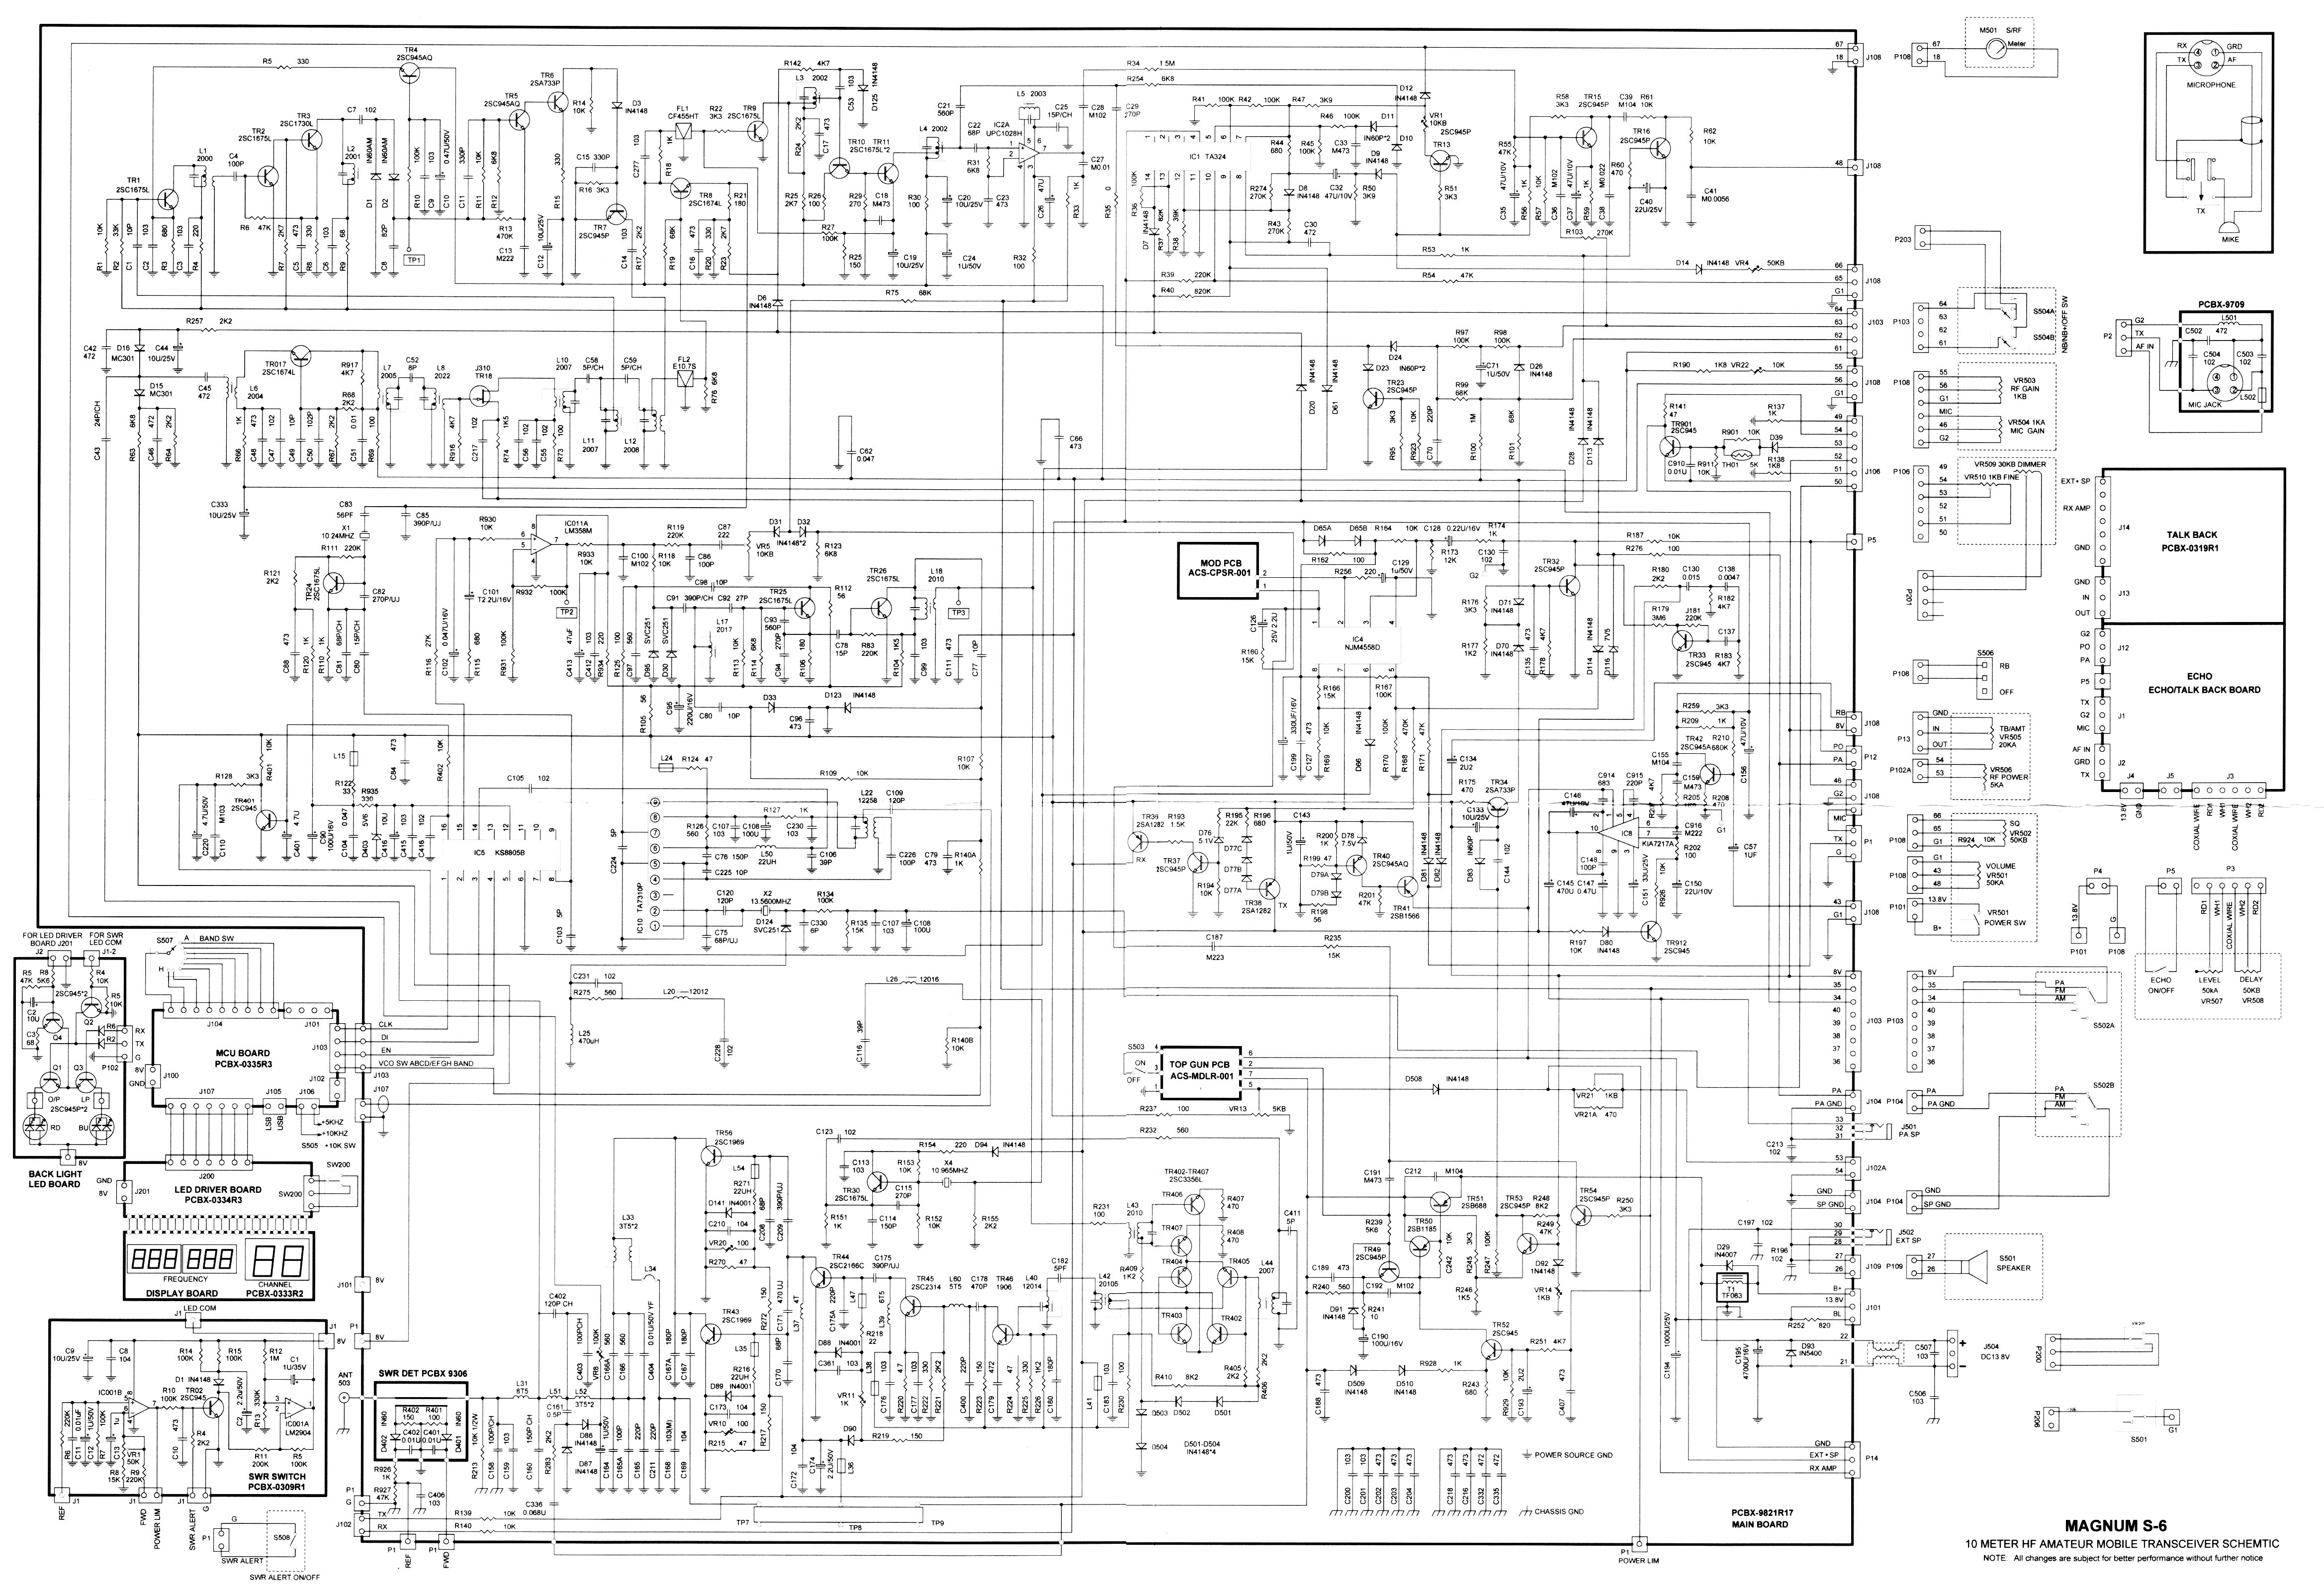 Colorful Uniden Cb Mic Wiring Diagram Frieze - Electrical and Wiring ...